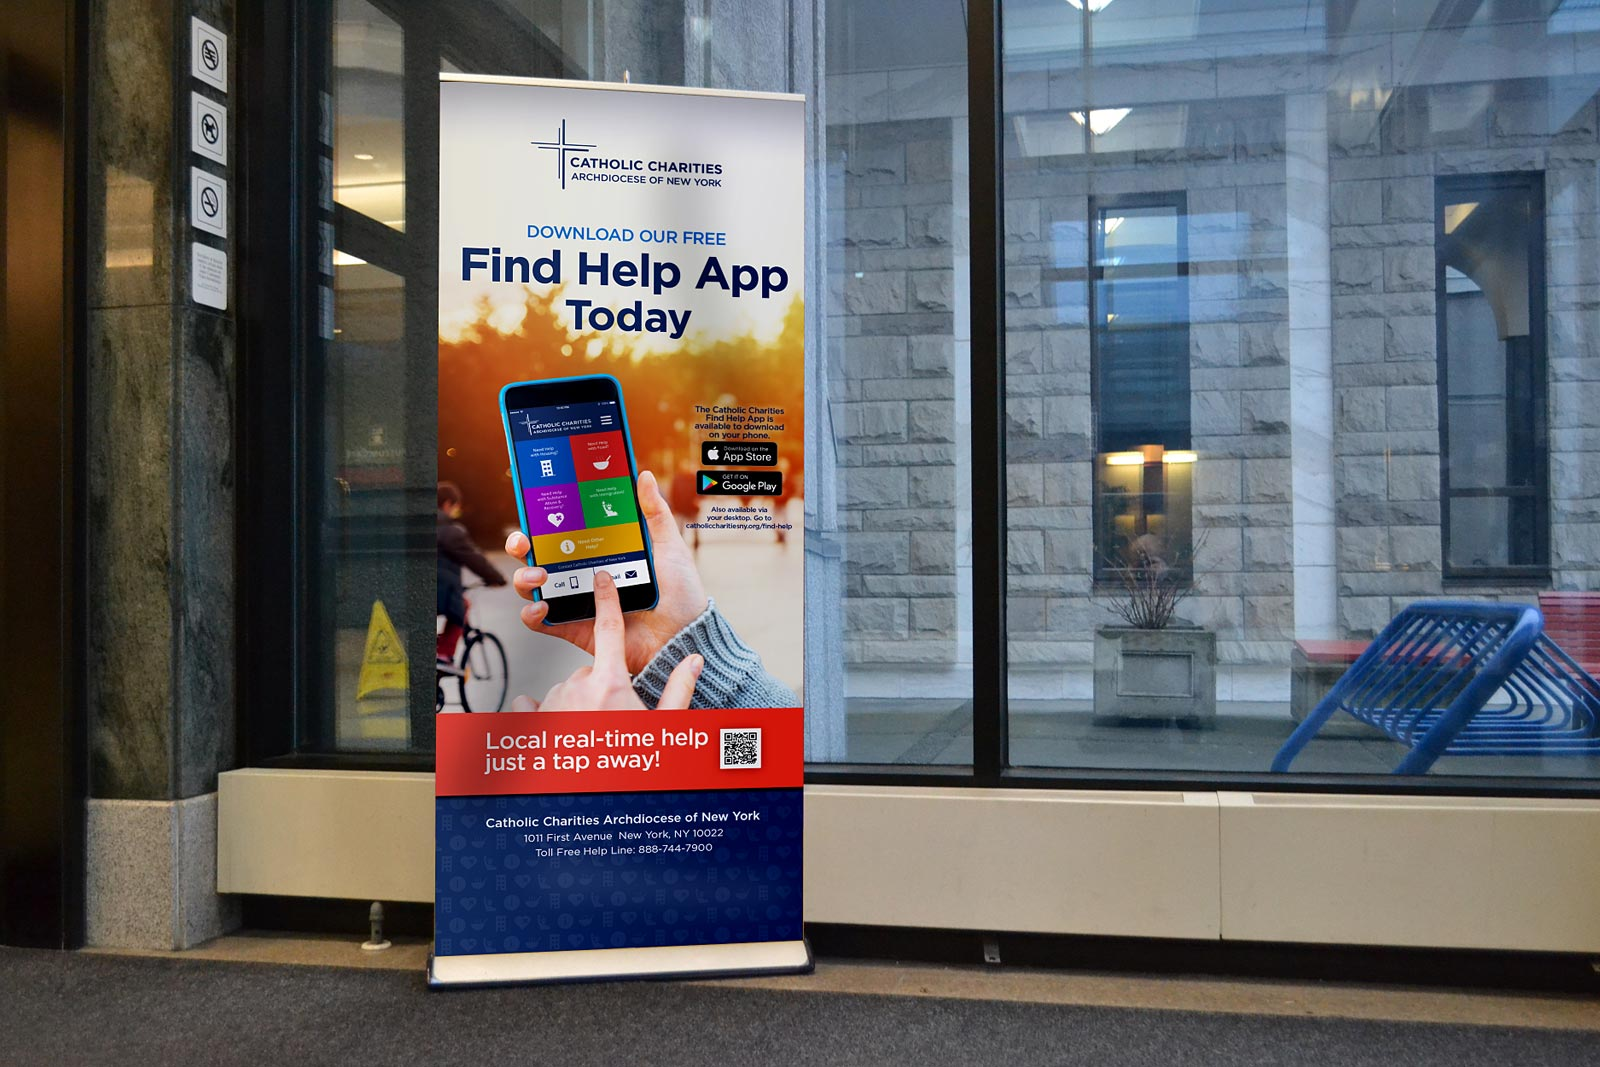 Catholic Charities Find Help App Campaign Bannerstand